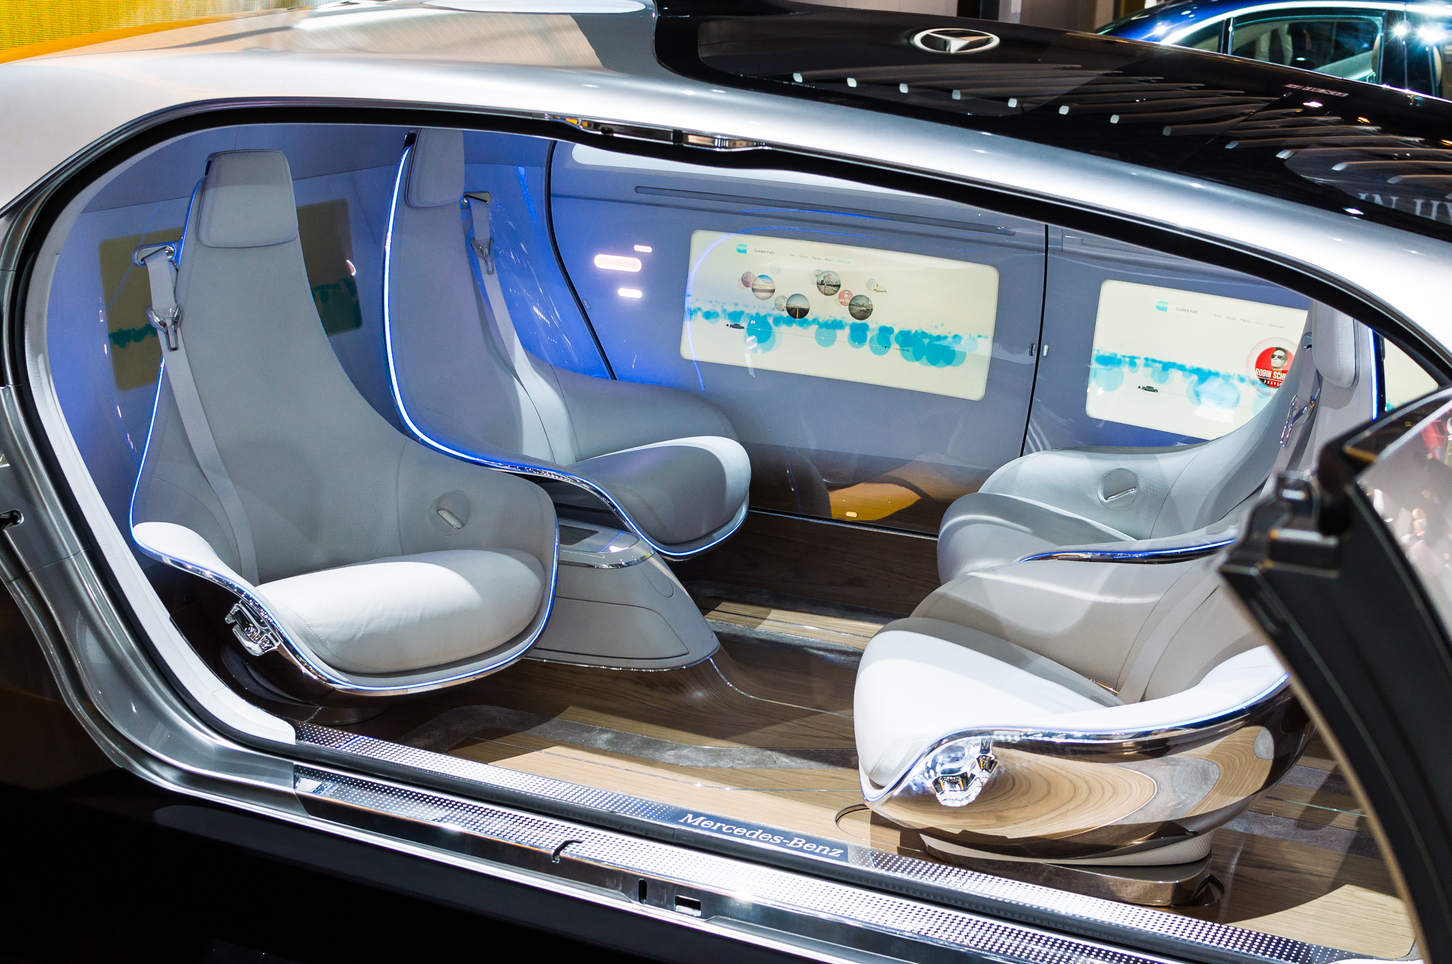 Driverless cars: job creator or killer?